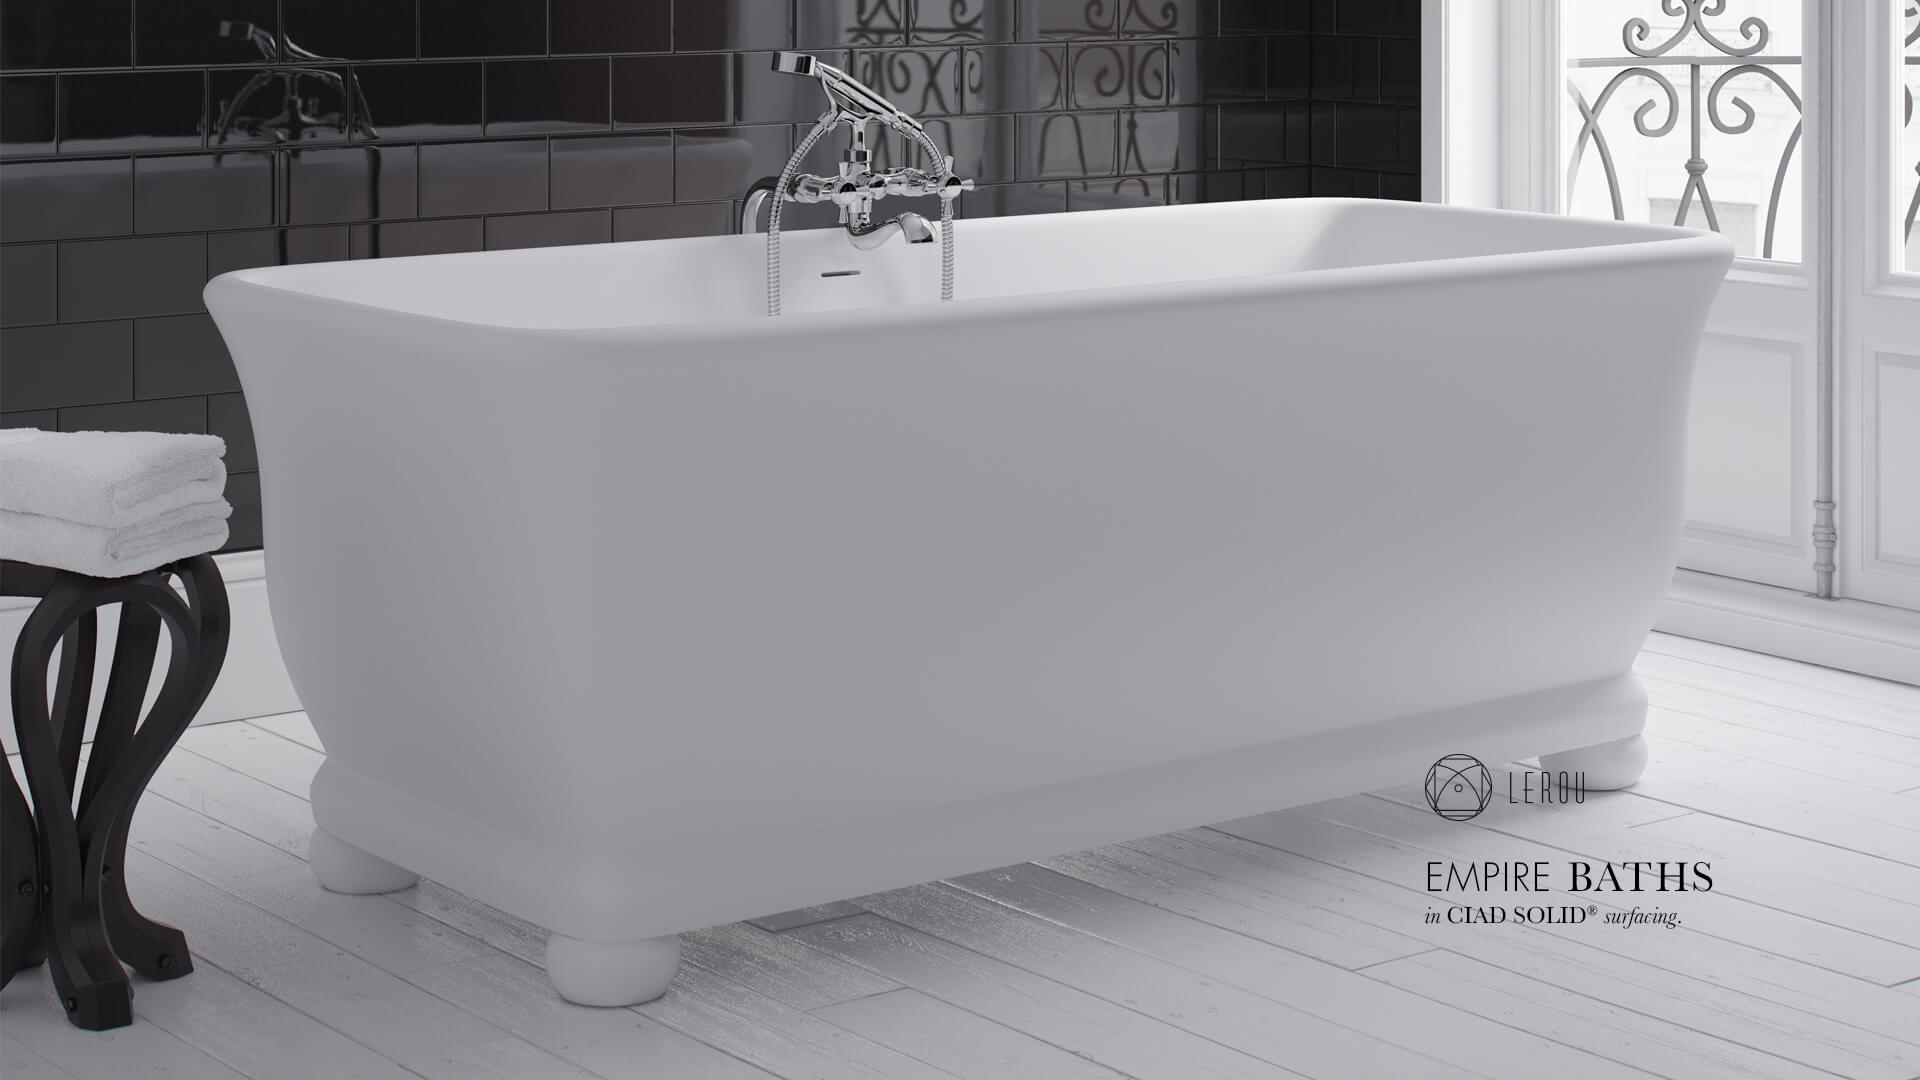 Lerou Empire Baths in CIAD® Solid Surfacing. Lerou vrijstaande Empire baden in CIAD® Solid oppervlakte.